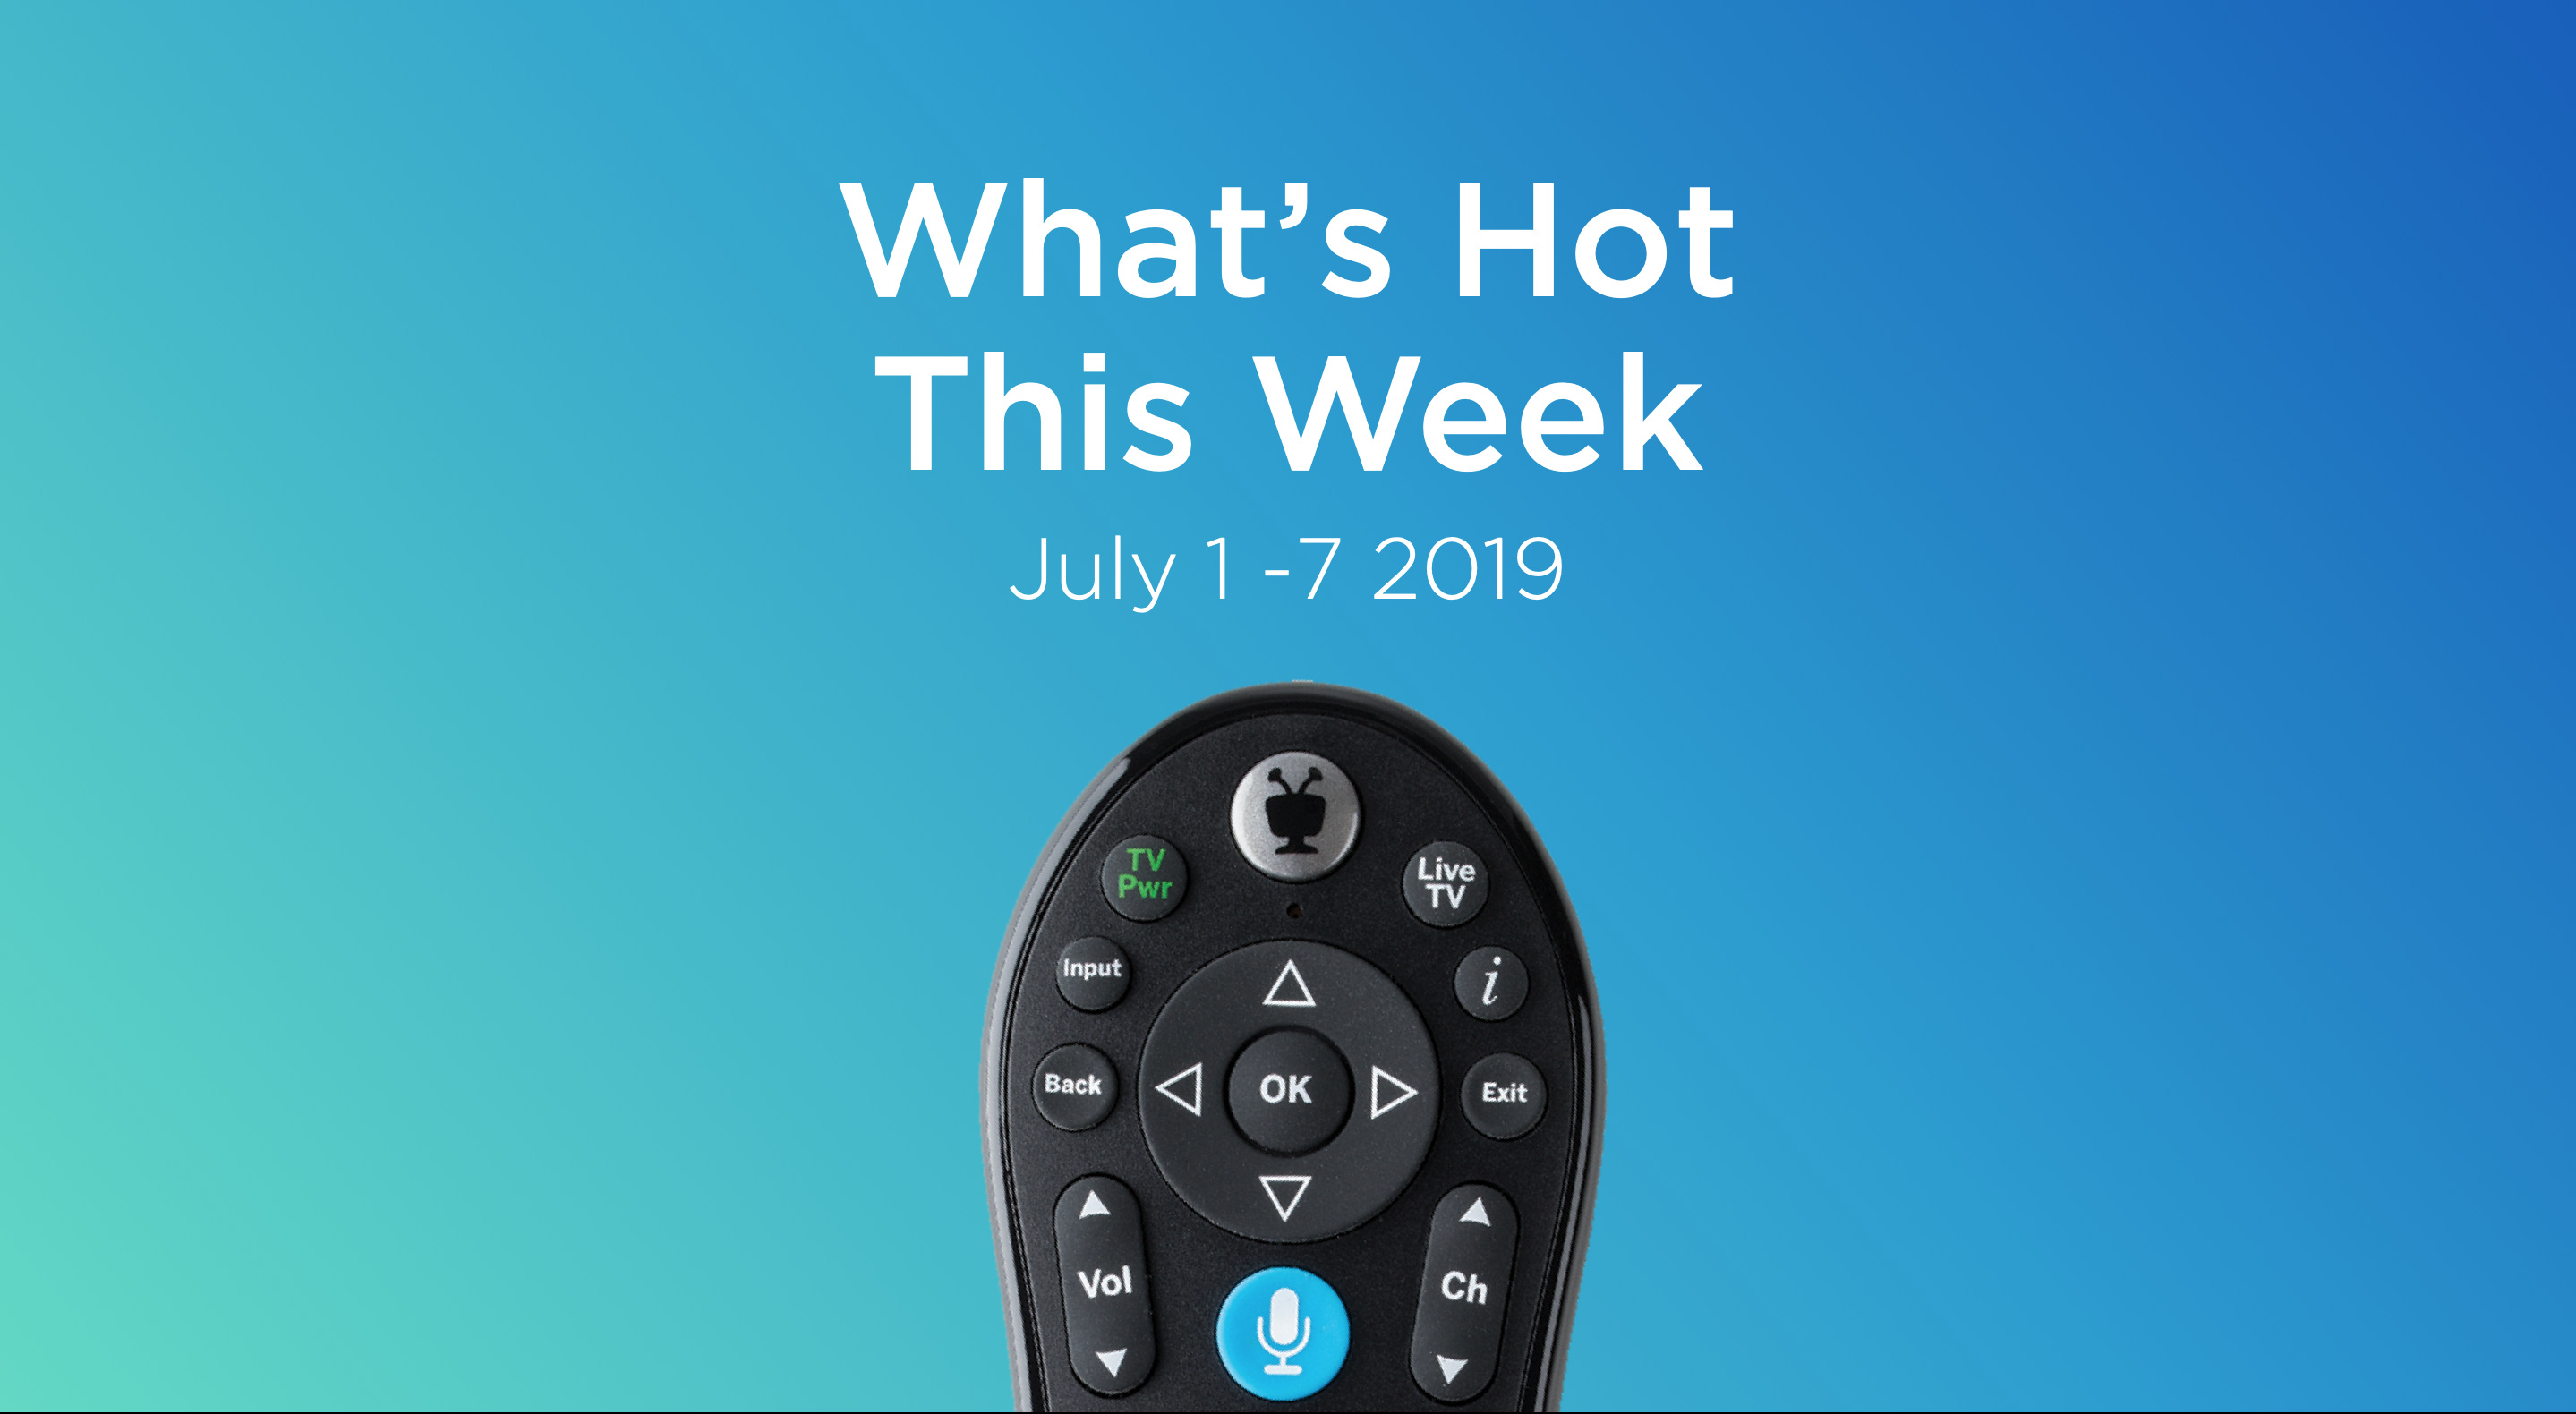 What's Hot This Week on TV | July 1-7 2019 - TiVo Blog Television